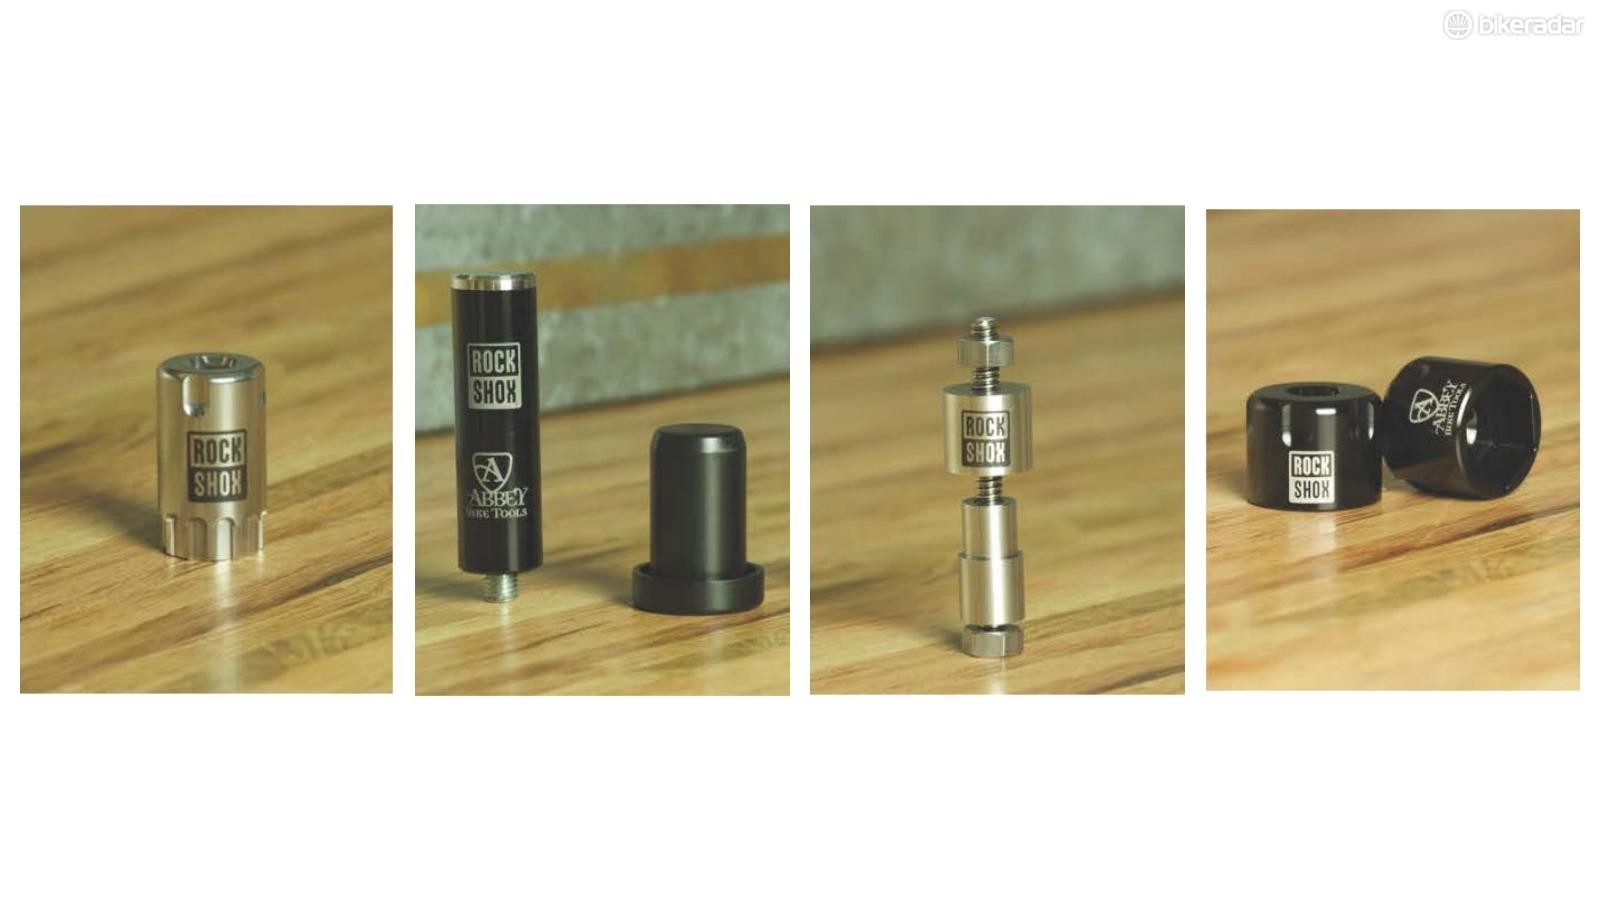 From left: SUS top cap tool, flangeless dust seal tool, bushing tool, and 24mm and 30mm sockets